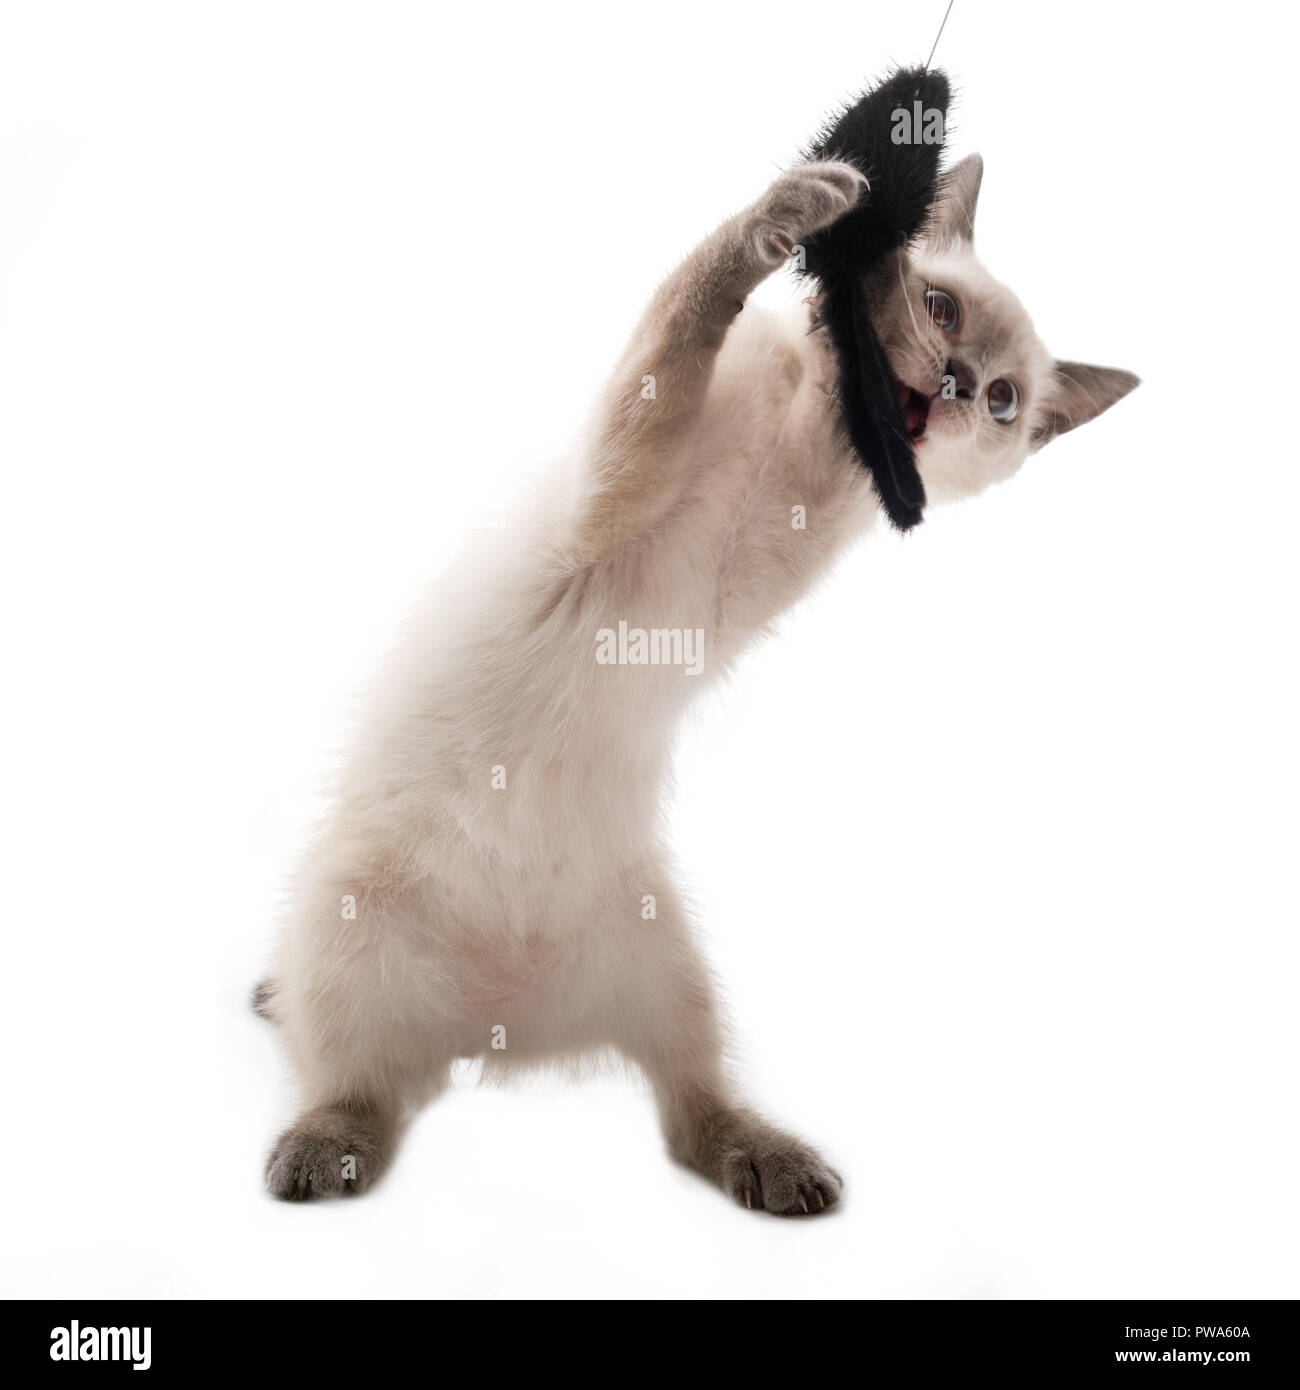 The kitten of a color of color-point catches a toy. The light kitten catches a black toy mouse on a string. White background, close up - Stock Image